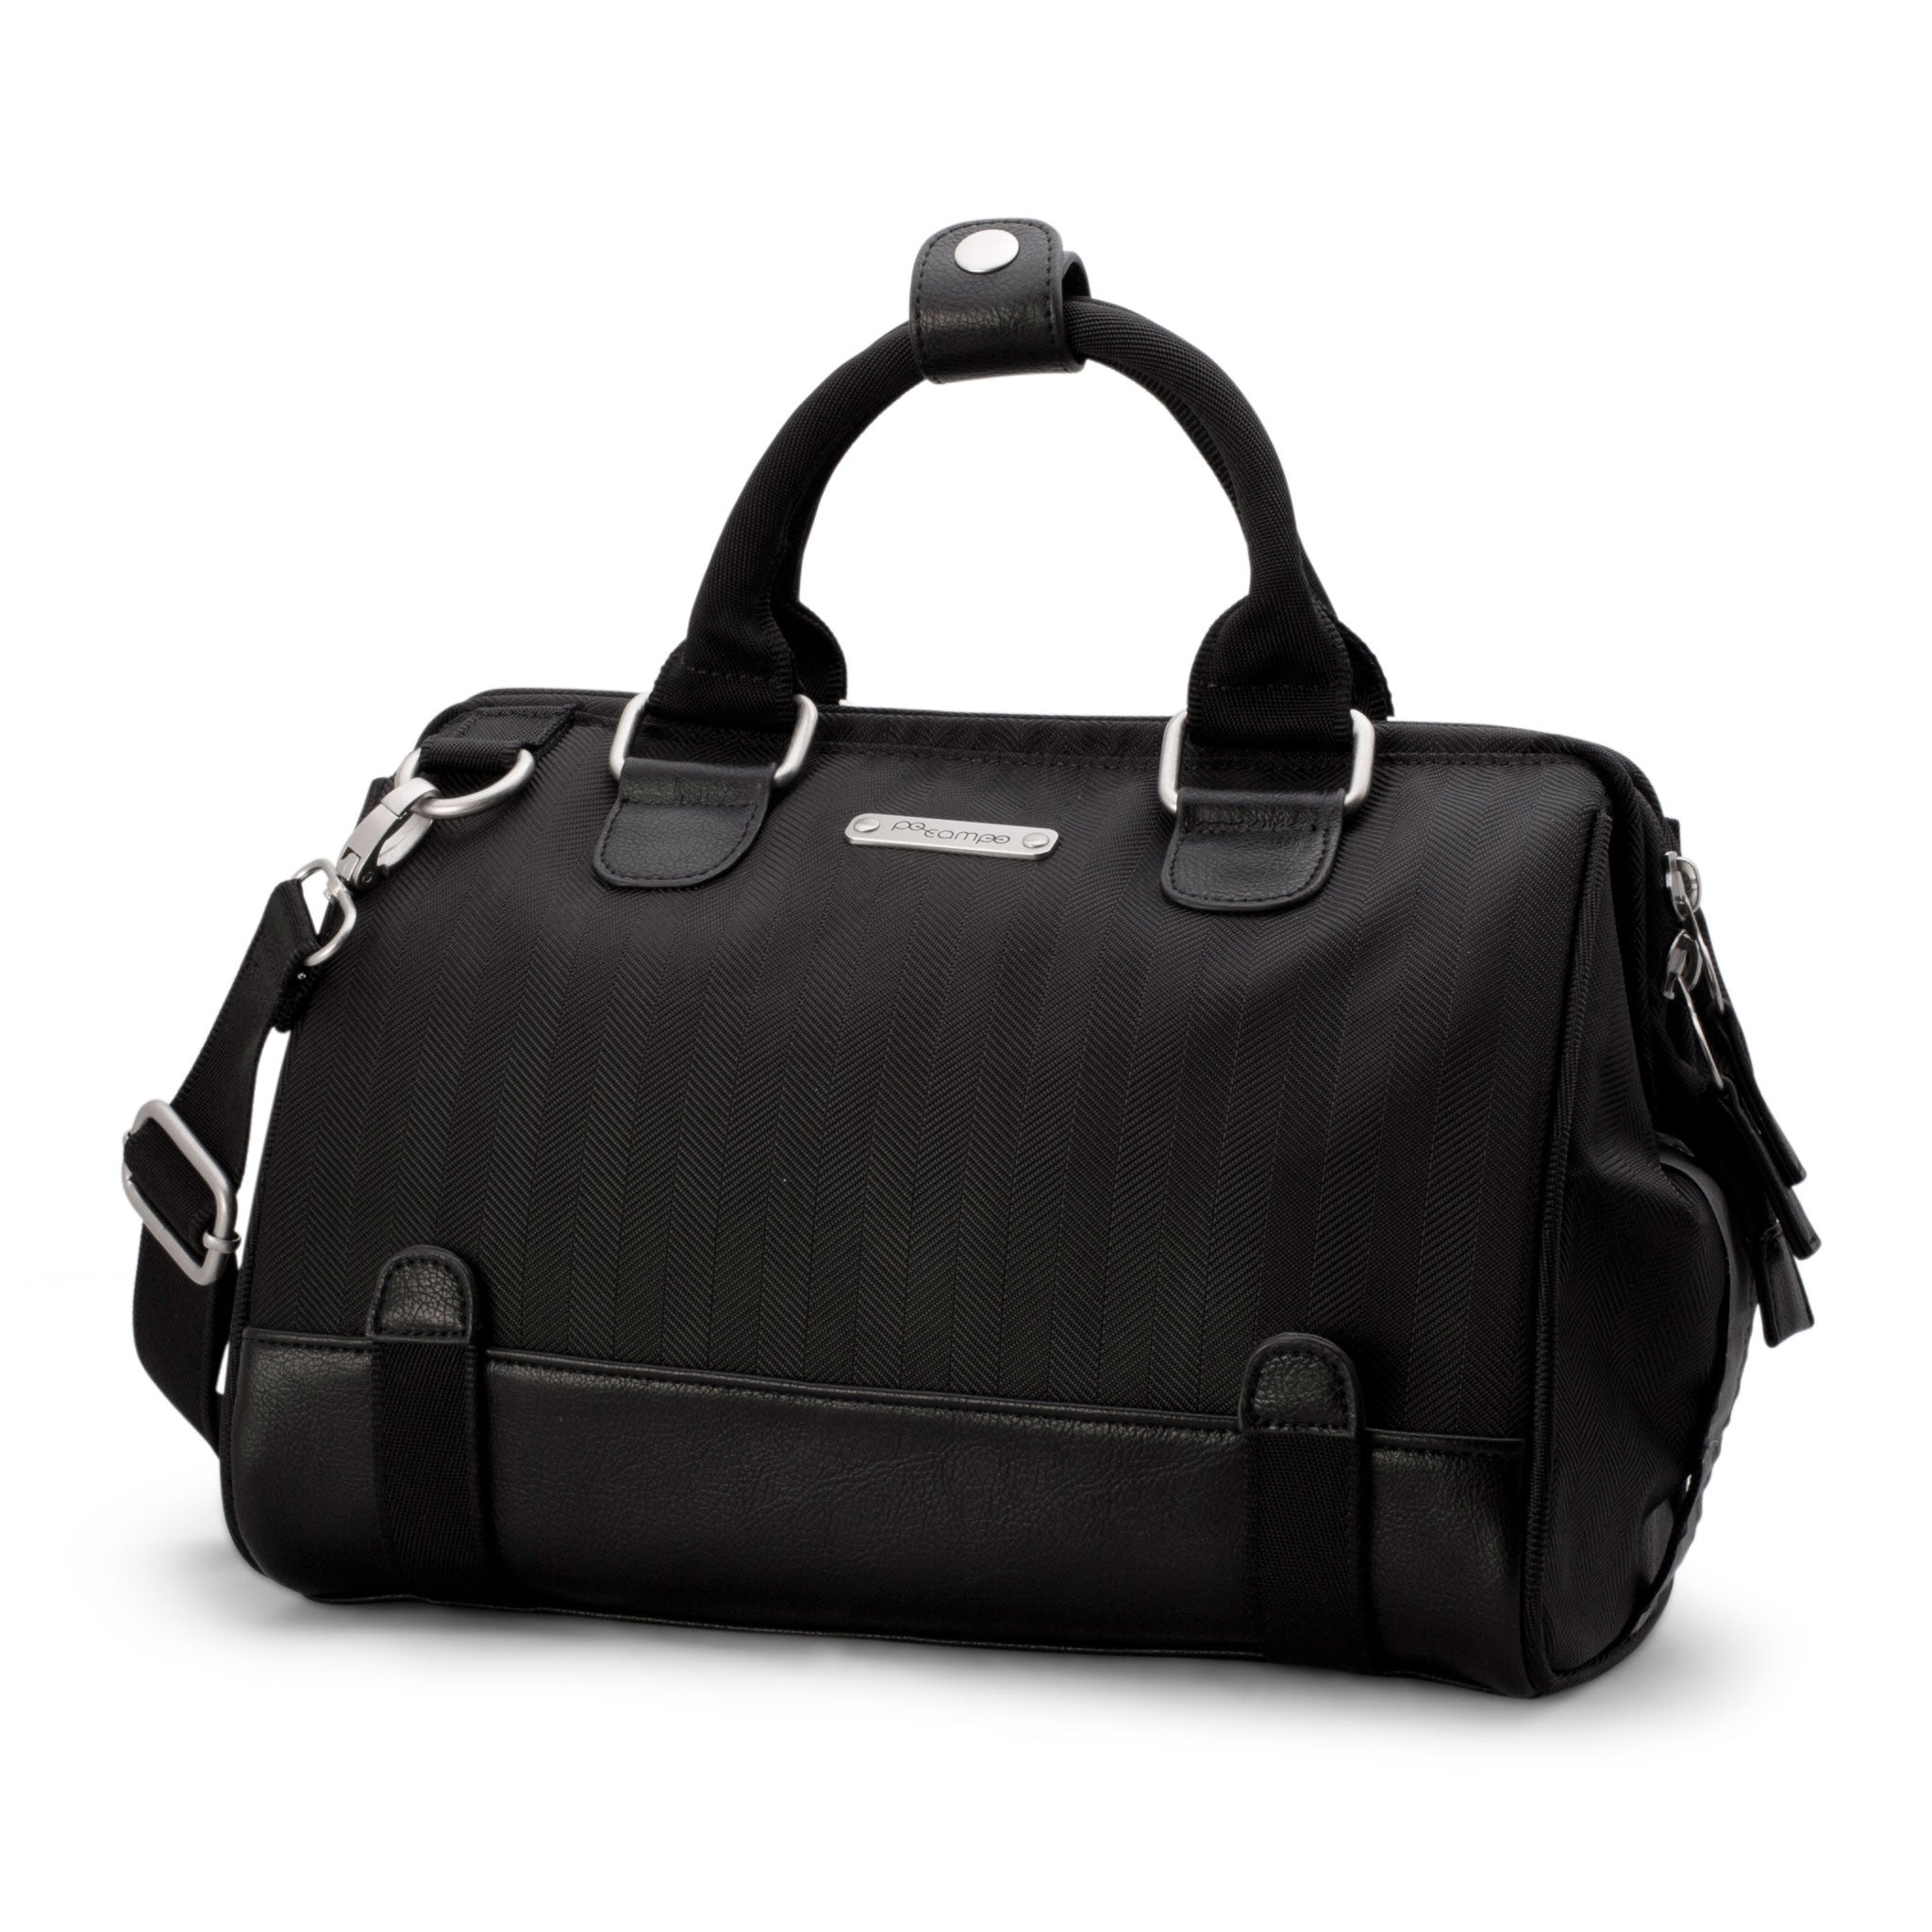 Uptown Bike Trunk Bag - Black Herringbone by Po Campo